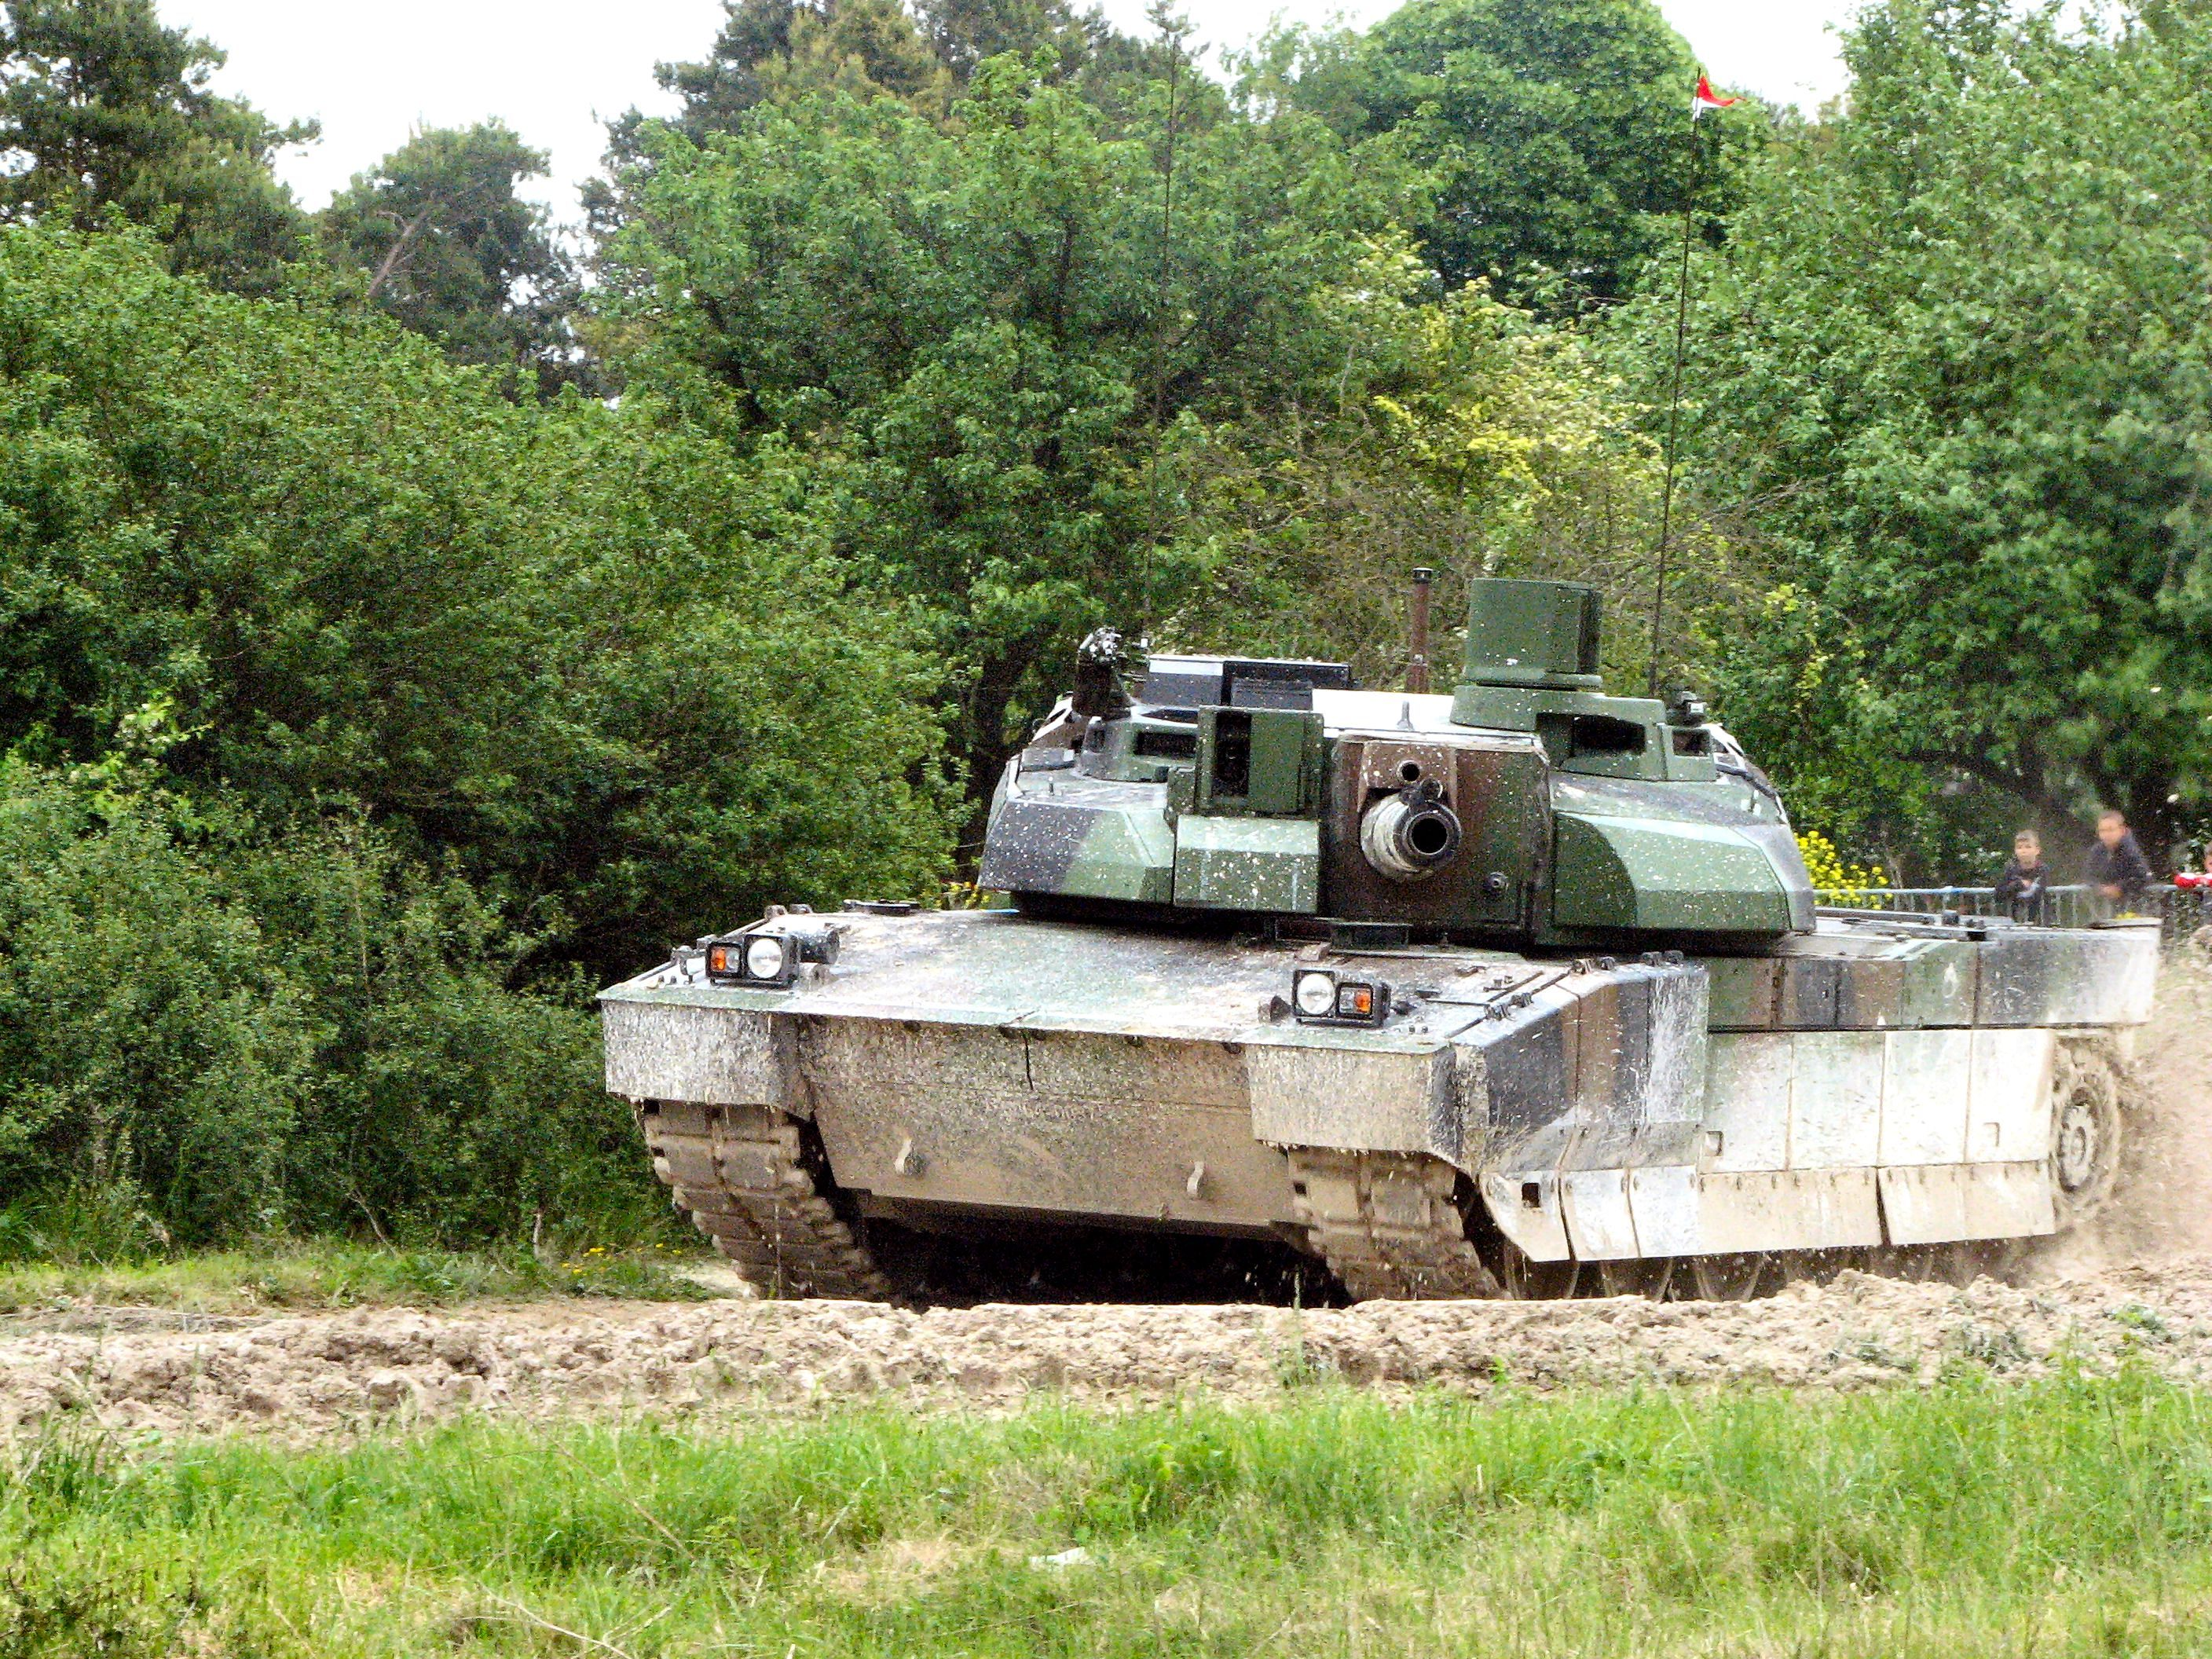 AMX Leclerc main battle tank during public demonstration